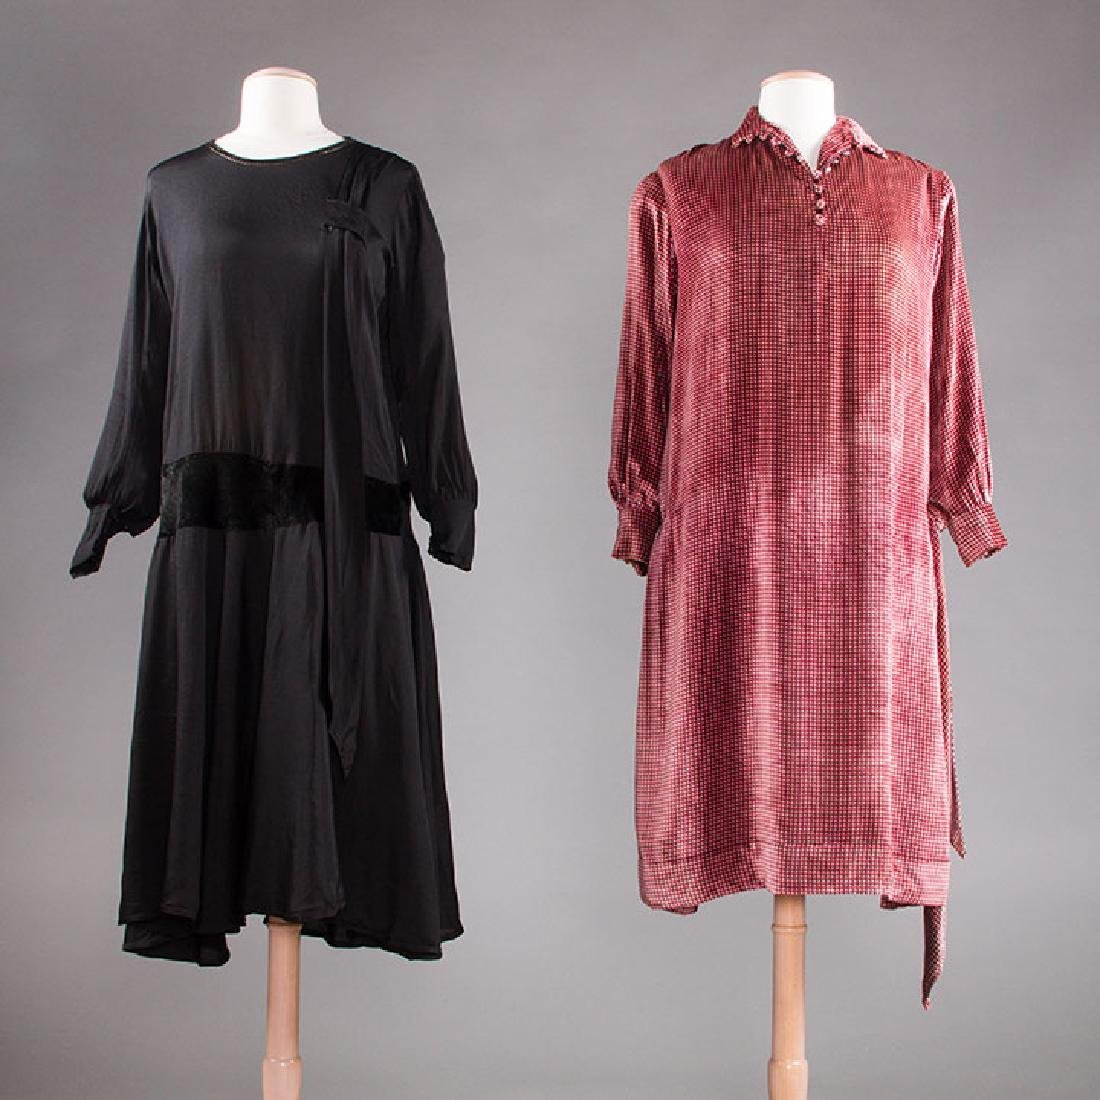 1 AFTERNOON & 1 DINNER DRESS, 1920s